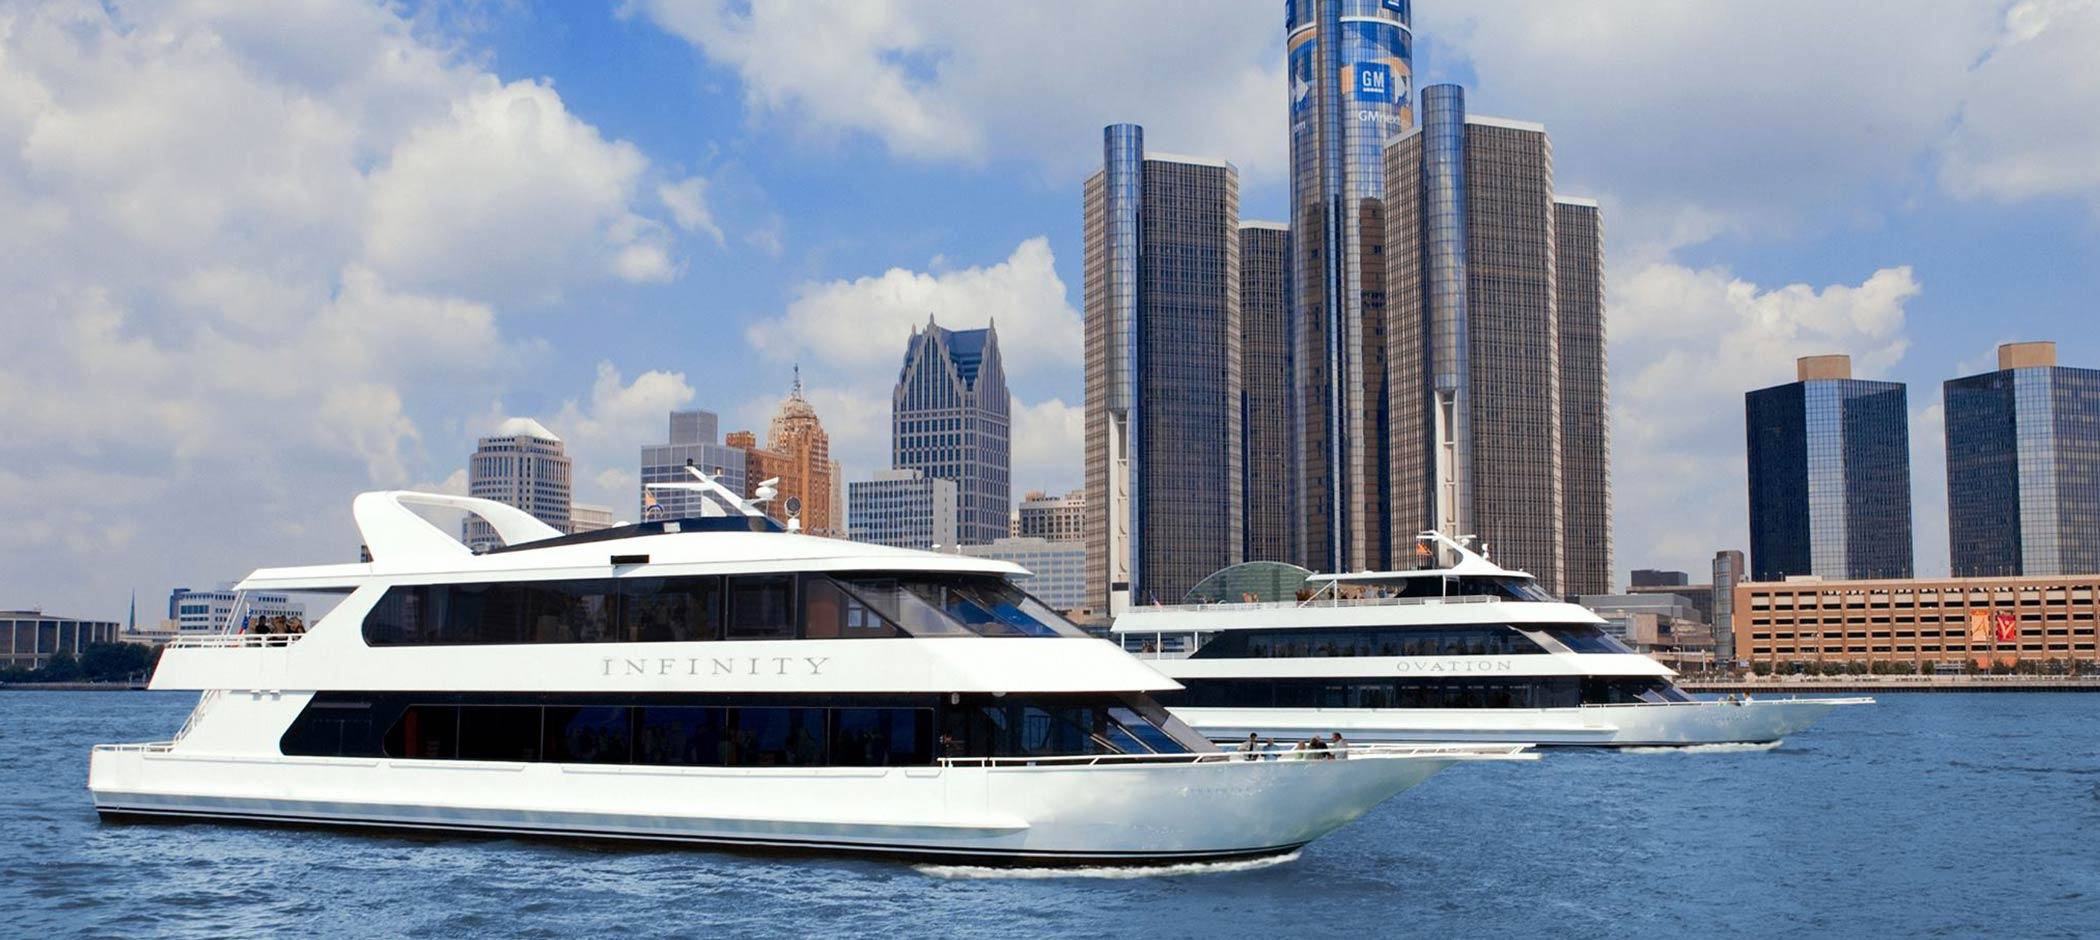 Infinity Ovation Yacht Charters with downtown Detroit